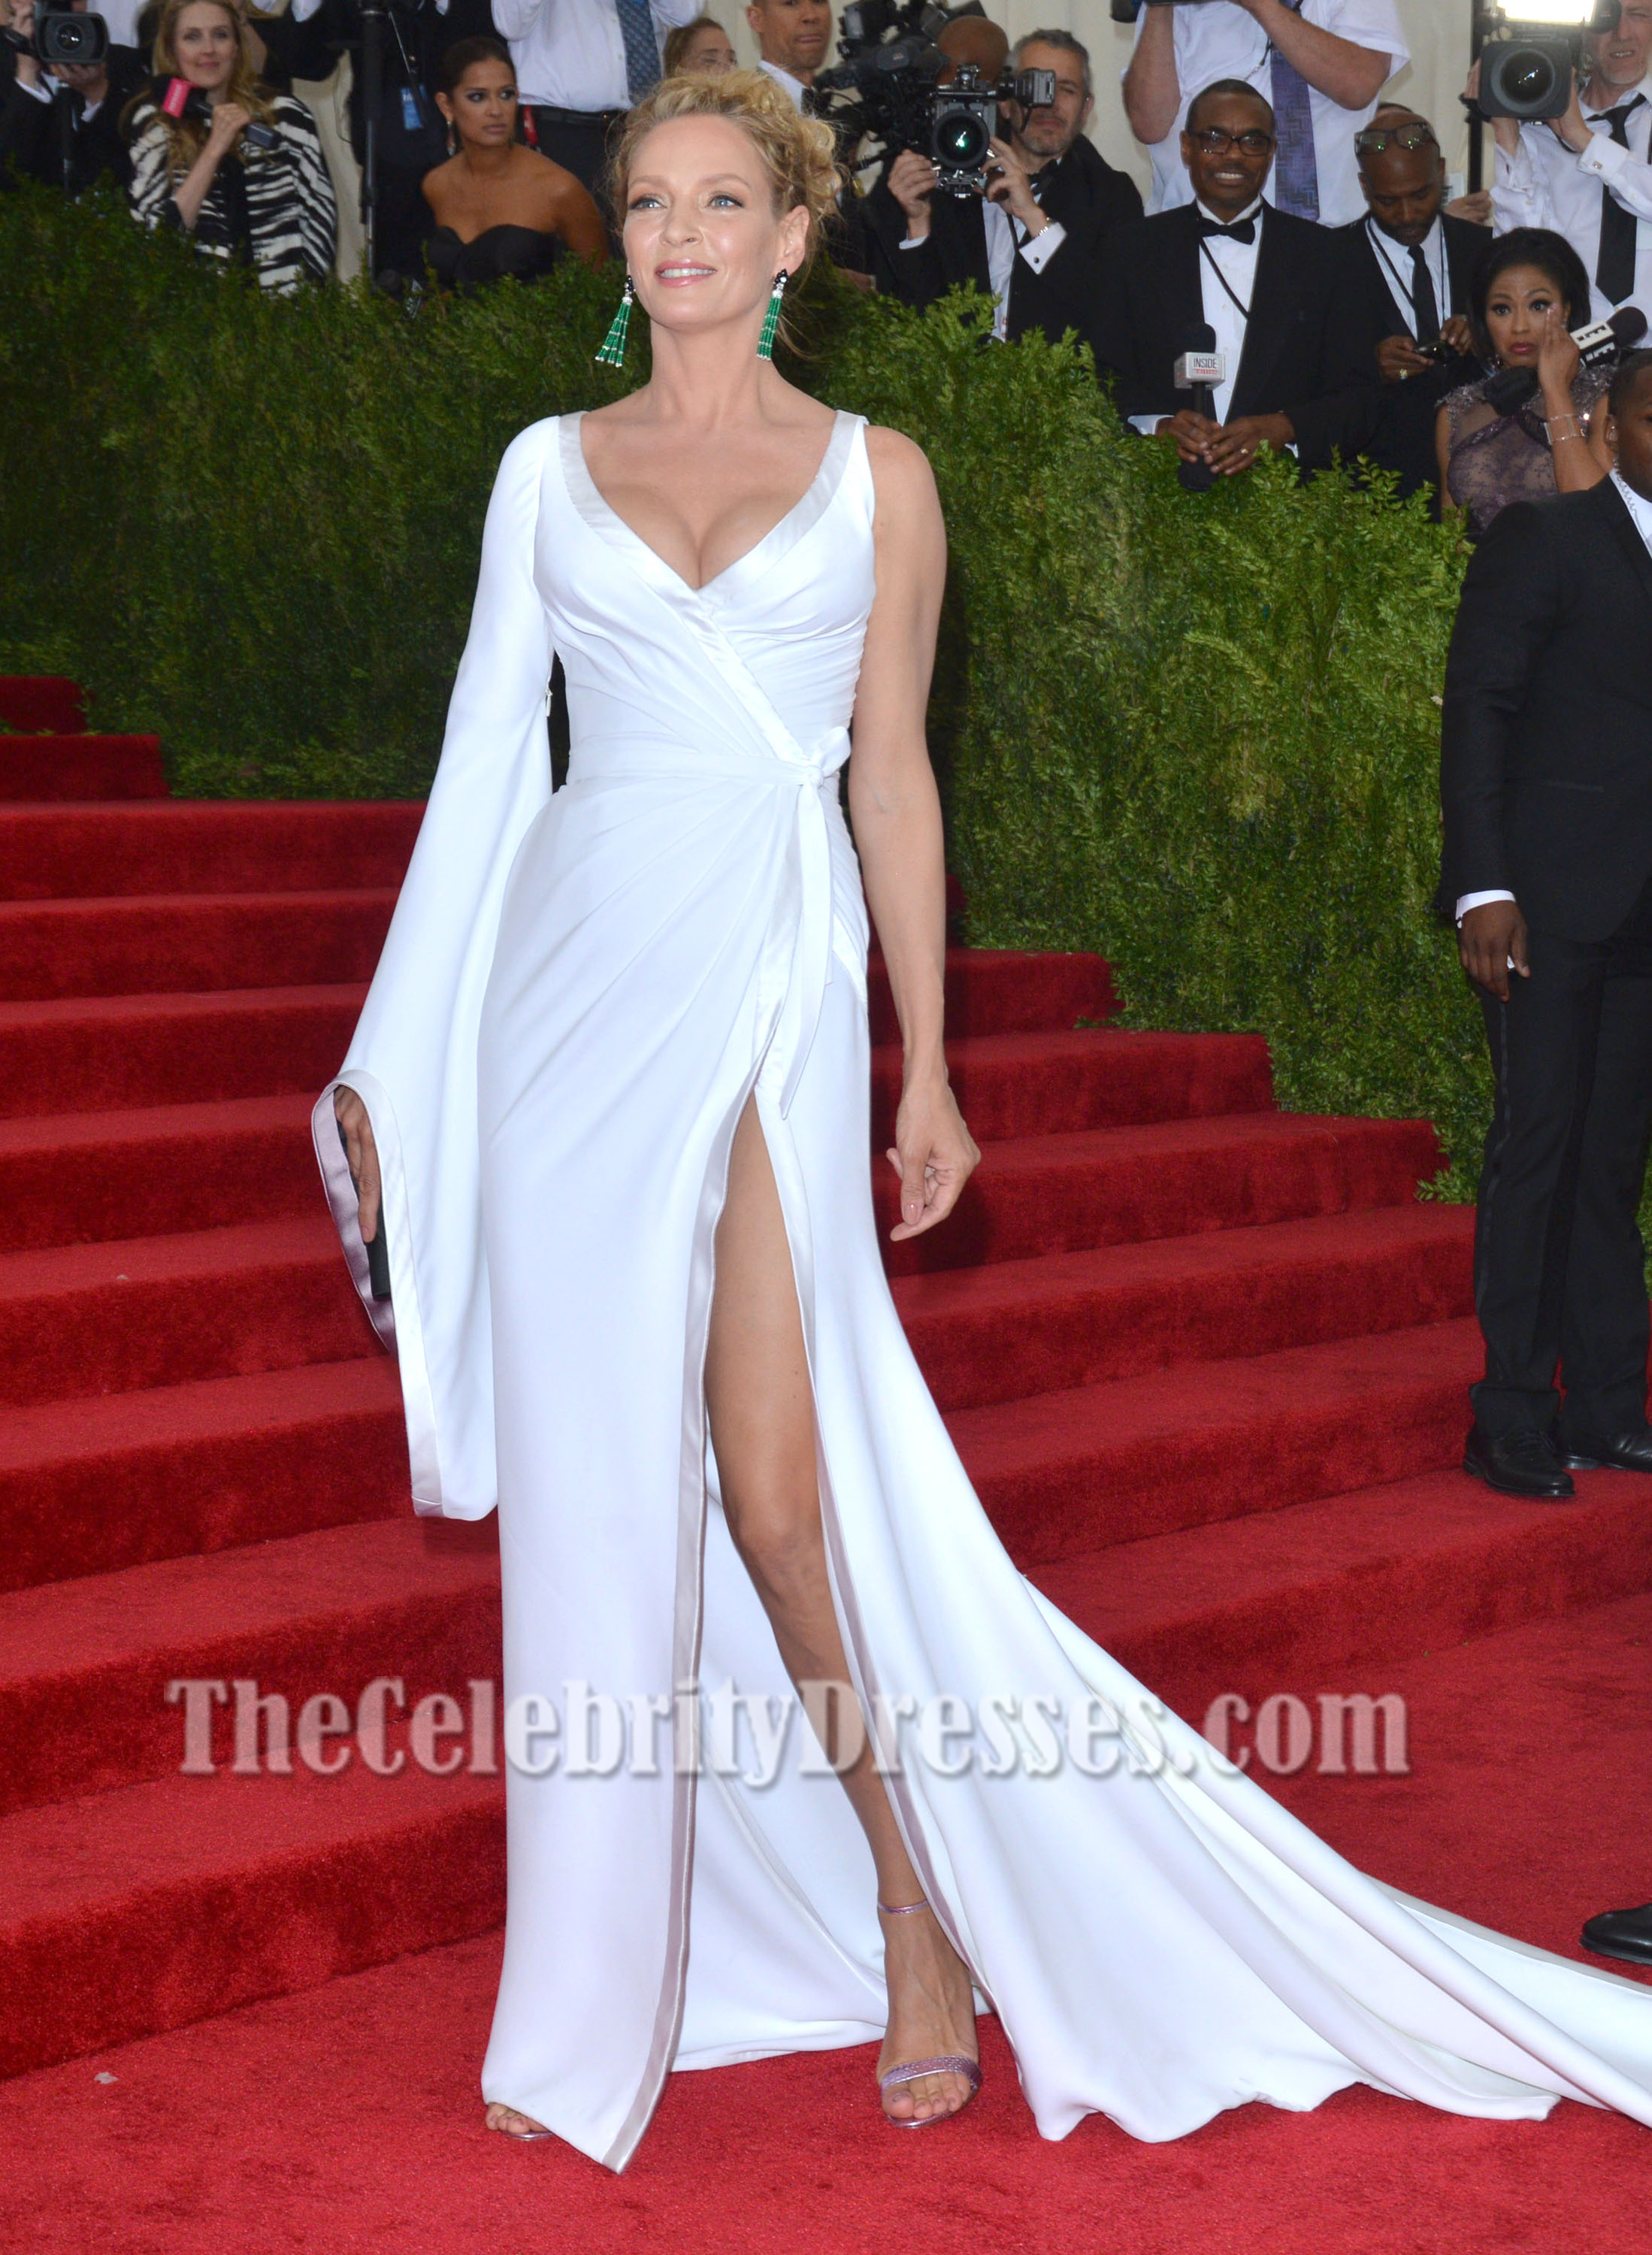 684286a7b20 UMA THURMAN White One Sleeve Evening Dress 2015 MET GALA Red Carpet Gown  TCD6919